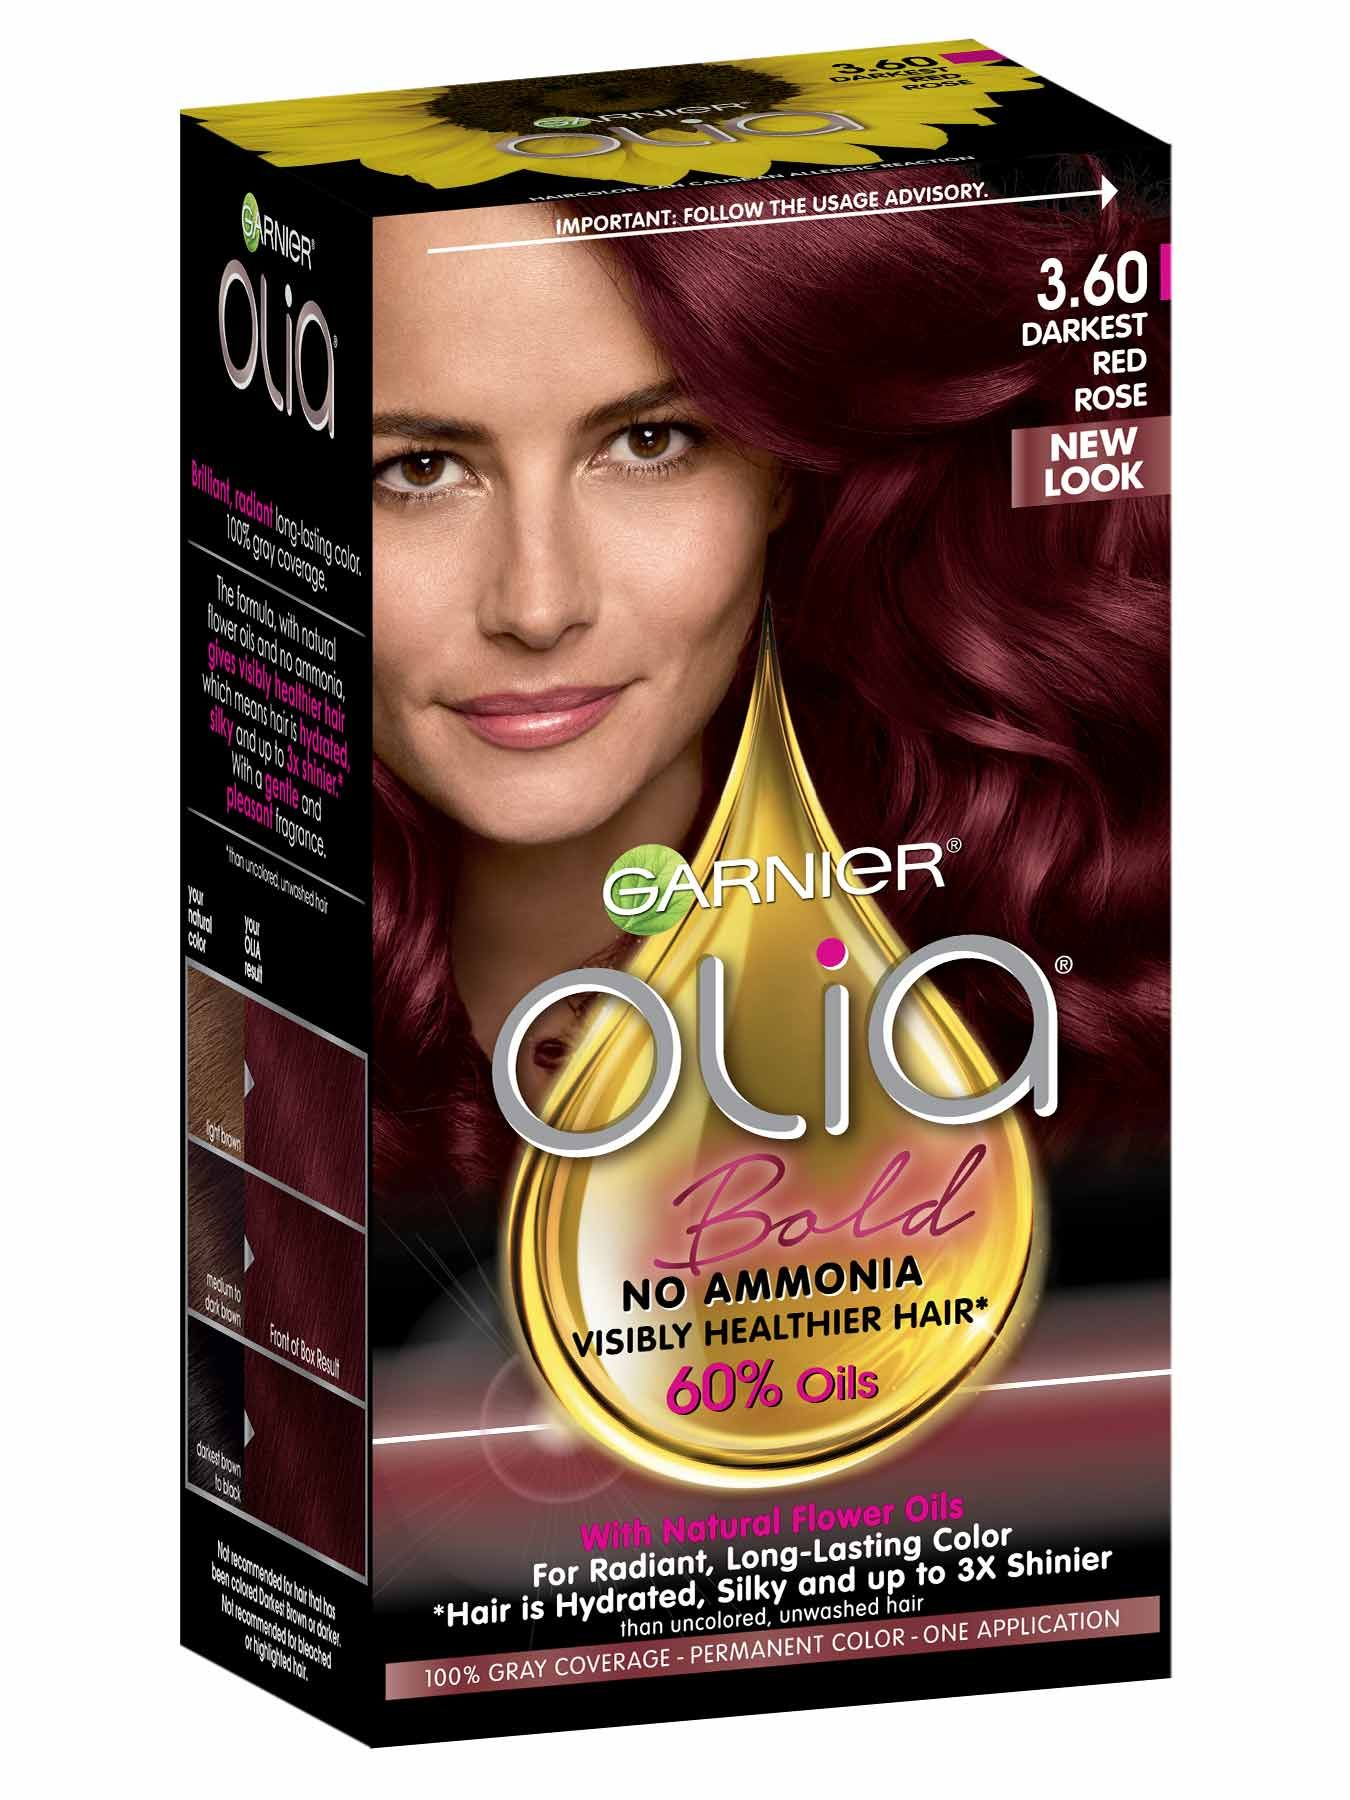 Olia Darkest Red Rose Hair Color Ammonia Free Hair Dye Garnier Permanent Hair Color How To Dye Hair At Home At Home Hair Color